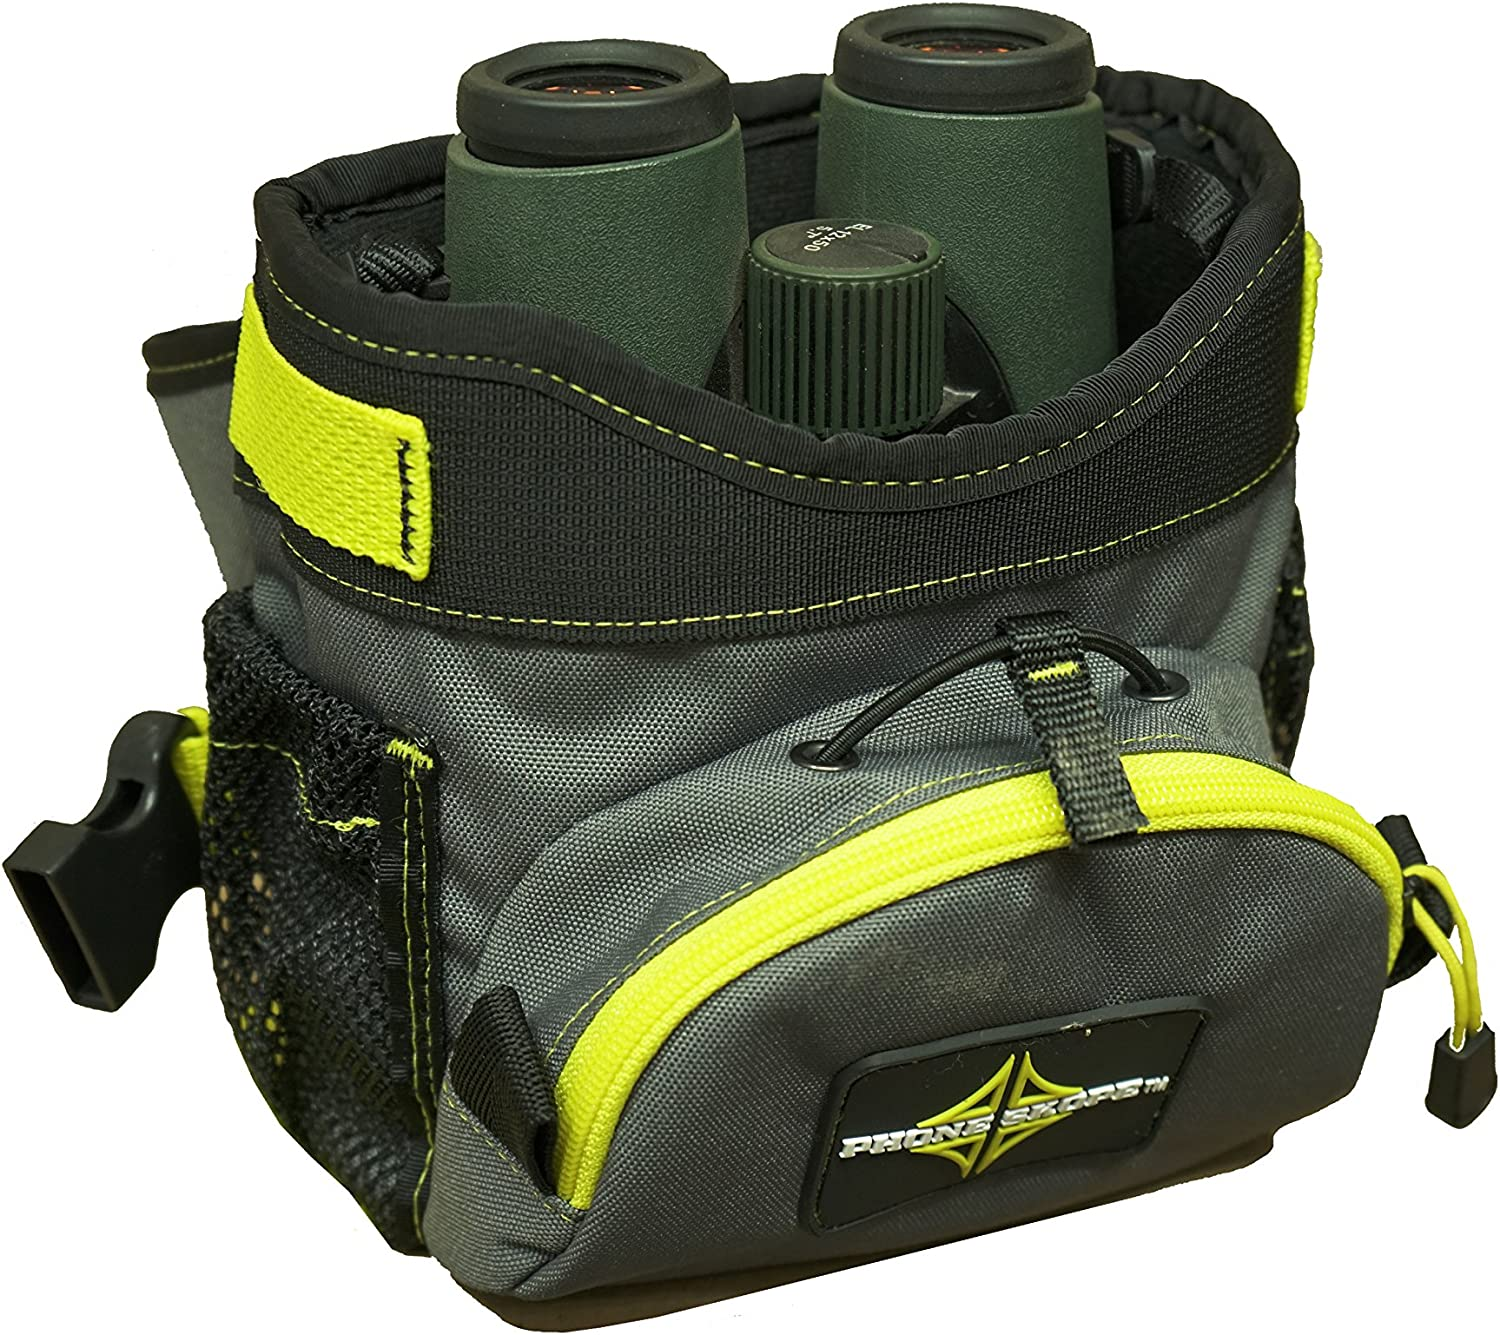 Phone Skope Binocular Chest Pack Cover for Hunting, Scouting, Bino Case and Shield